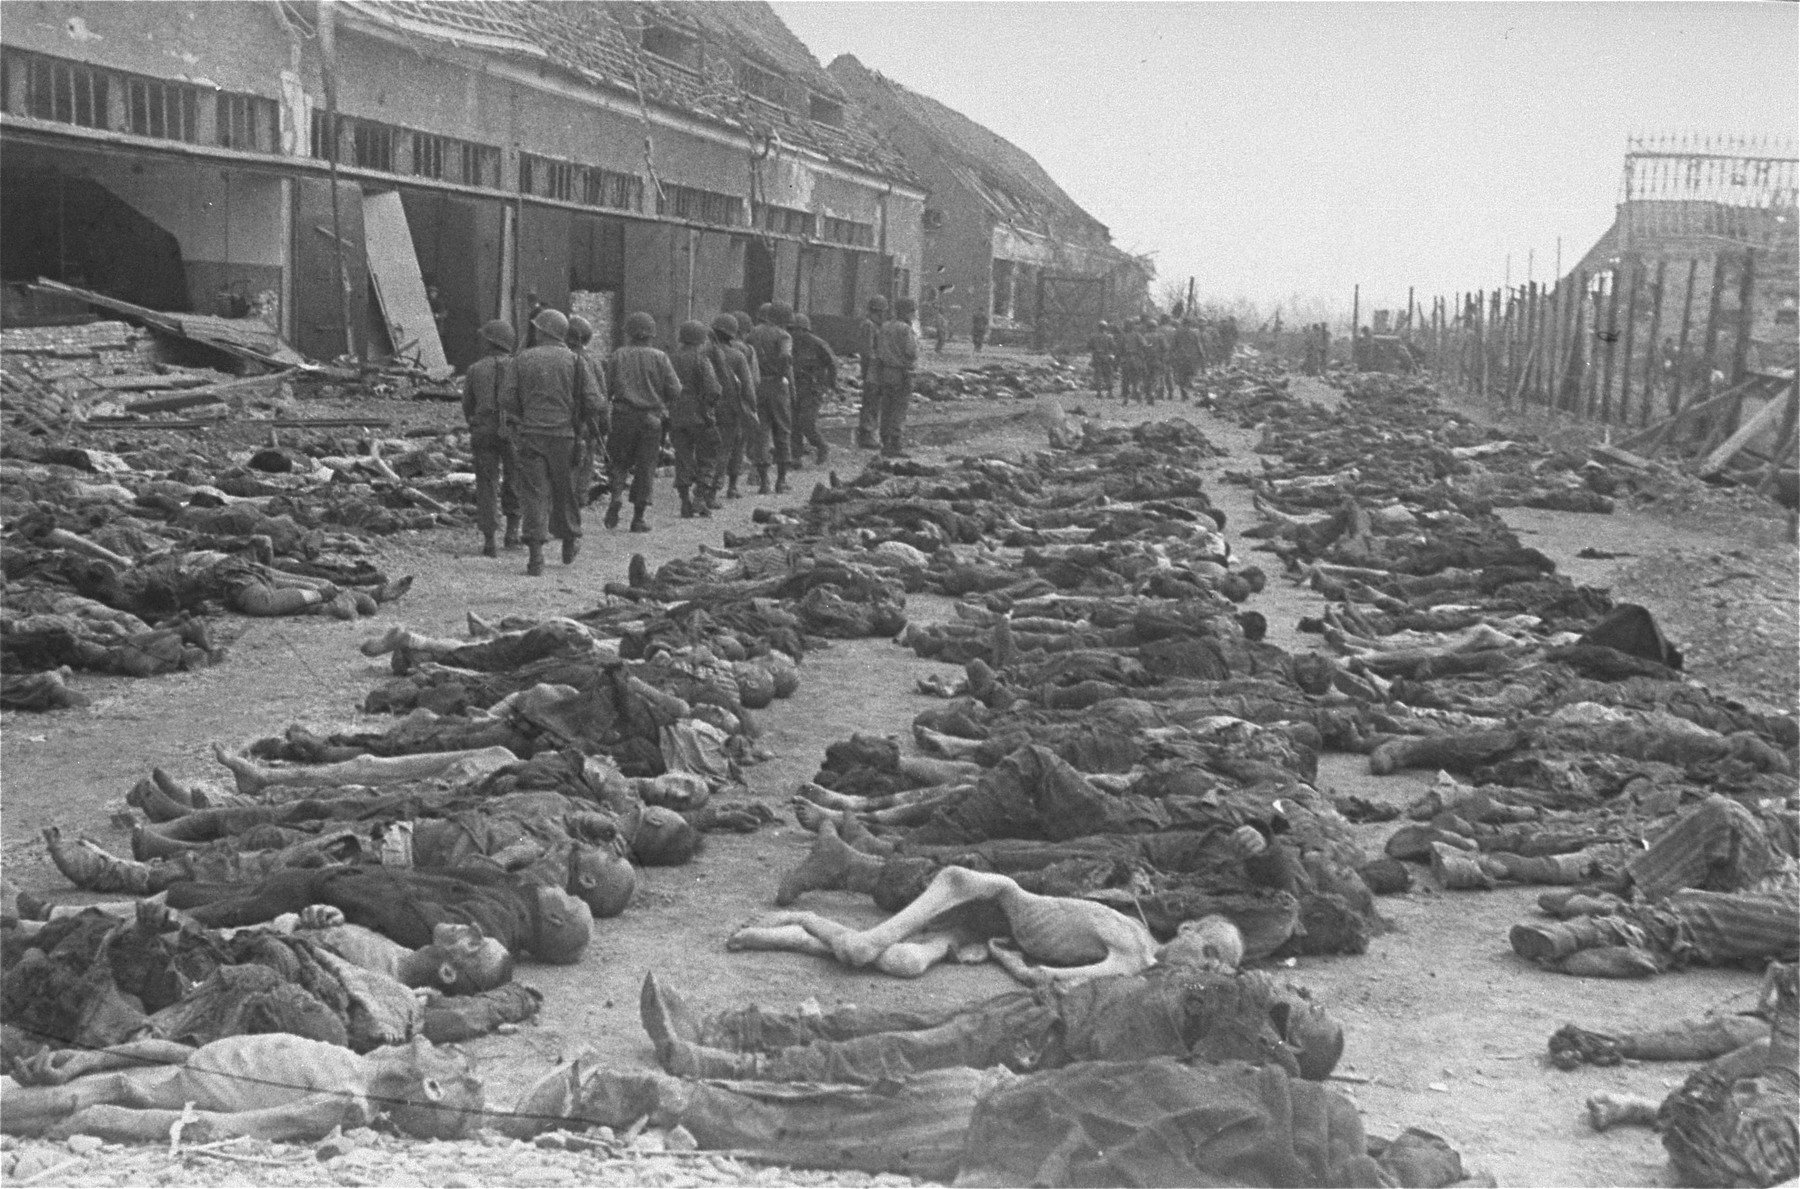 American soldiers walk past corpses that have been laid out in rows at the newly liberated Nordhausen concentration camp.